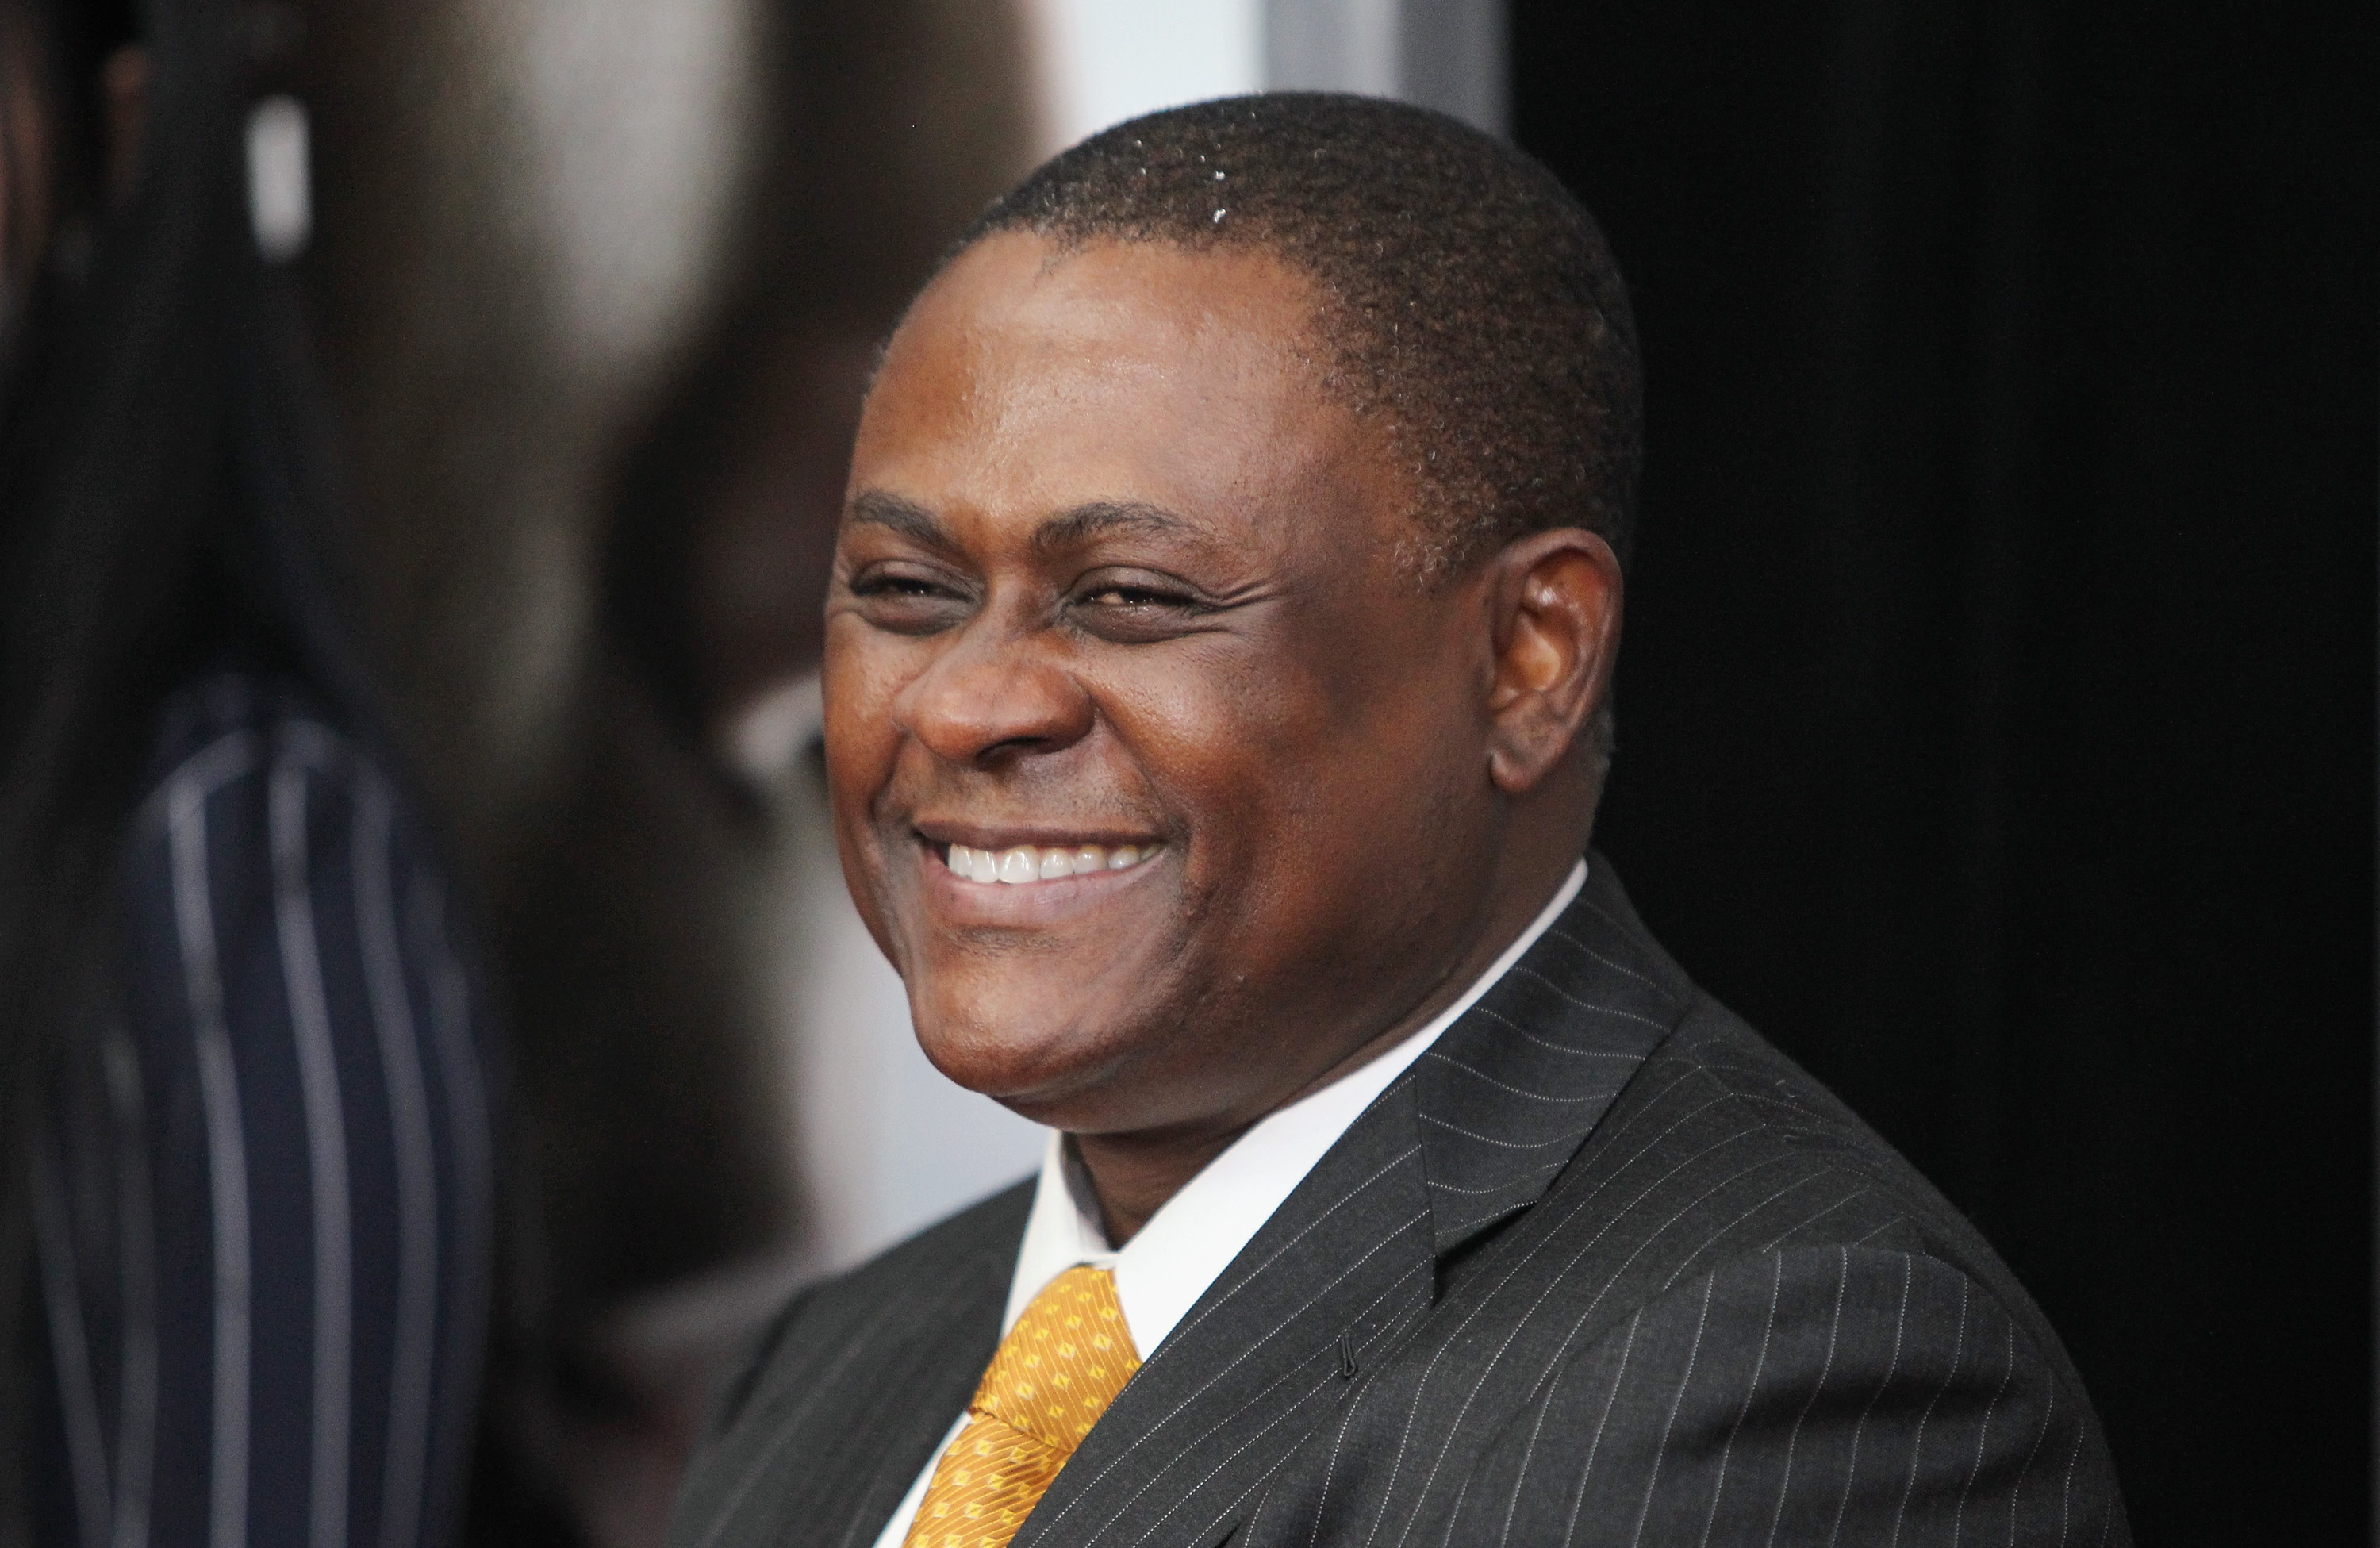 Dr. Bennet Omalu attends the  Concussion  premiere on Dec. 16, 2015 in New York City.